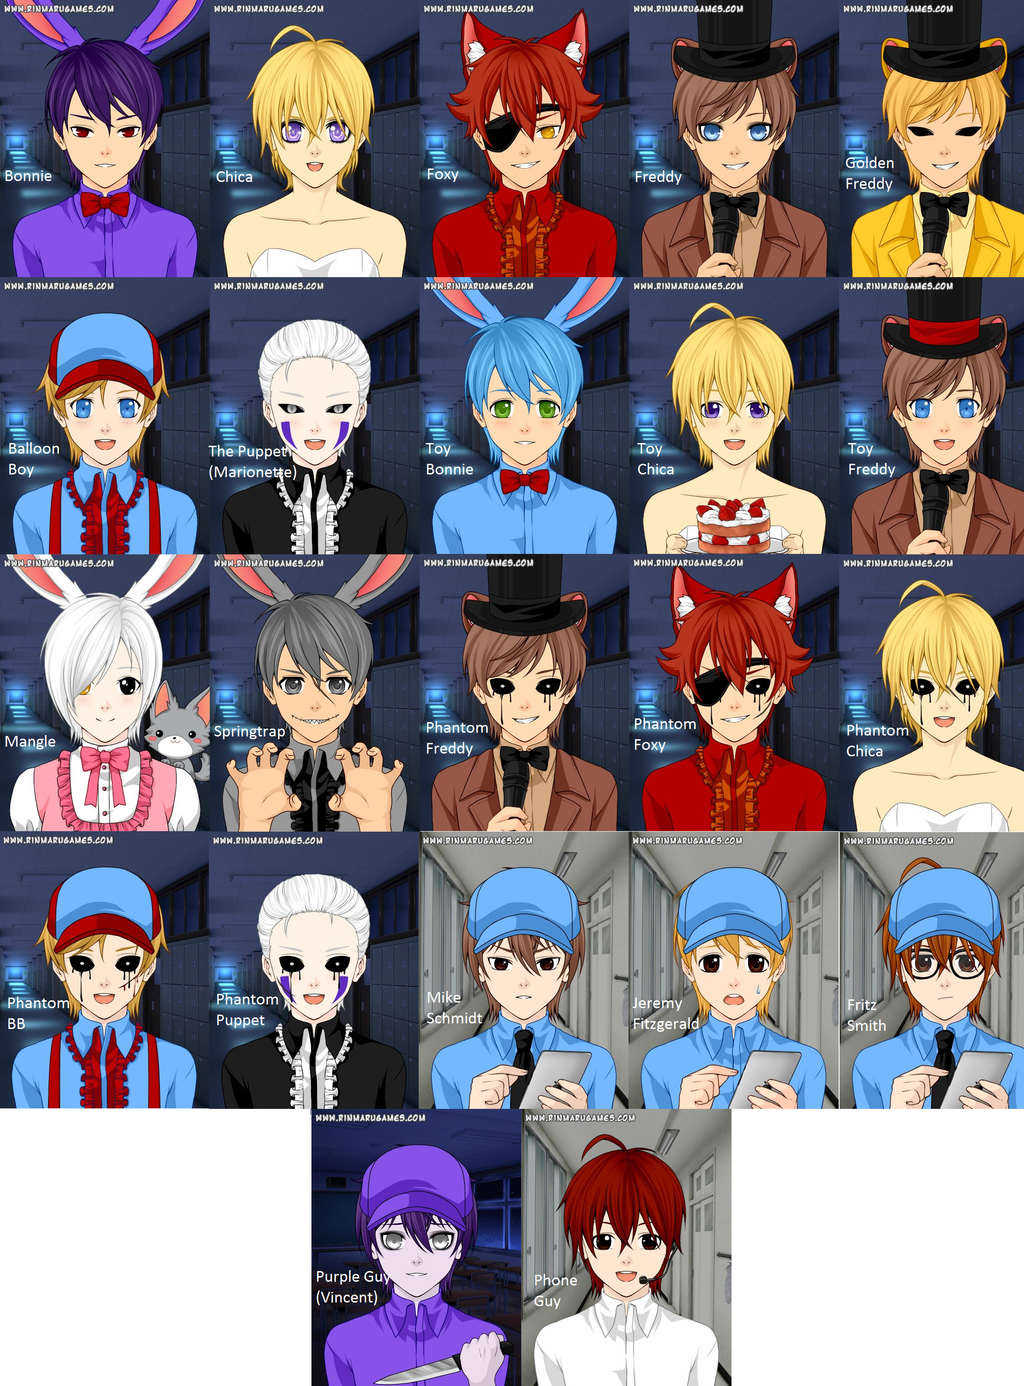 Fnaf 1 2 and 3 humanized characters by marceline2002 on deviantart